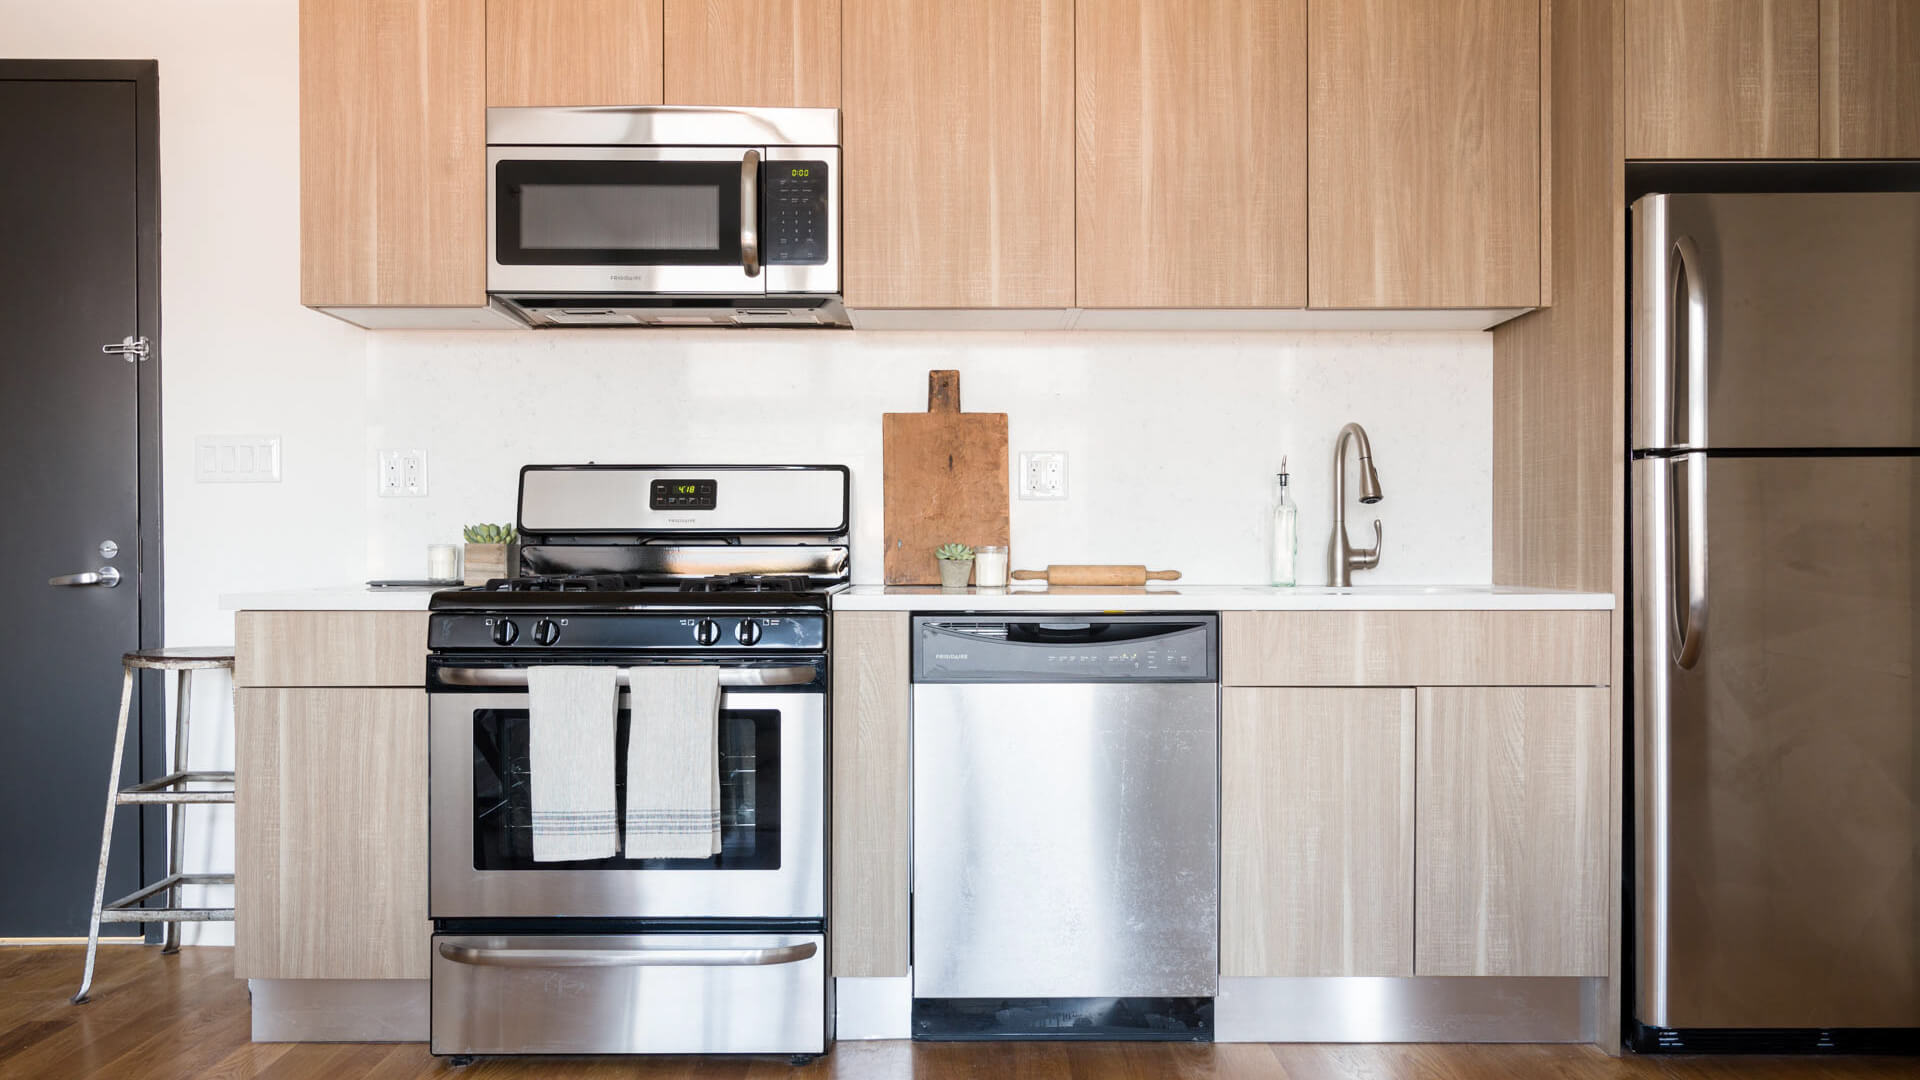 Area Median Income Marketing Images Of The Apartments Show Big, Bright  Windows, Contemporary Kitchens, And Hardwood Floors (as Well As A Very  Cliche